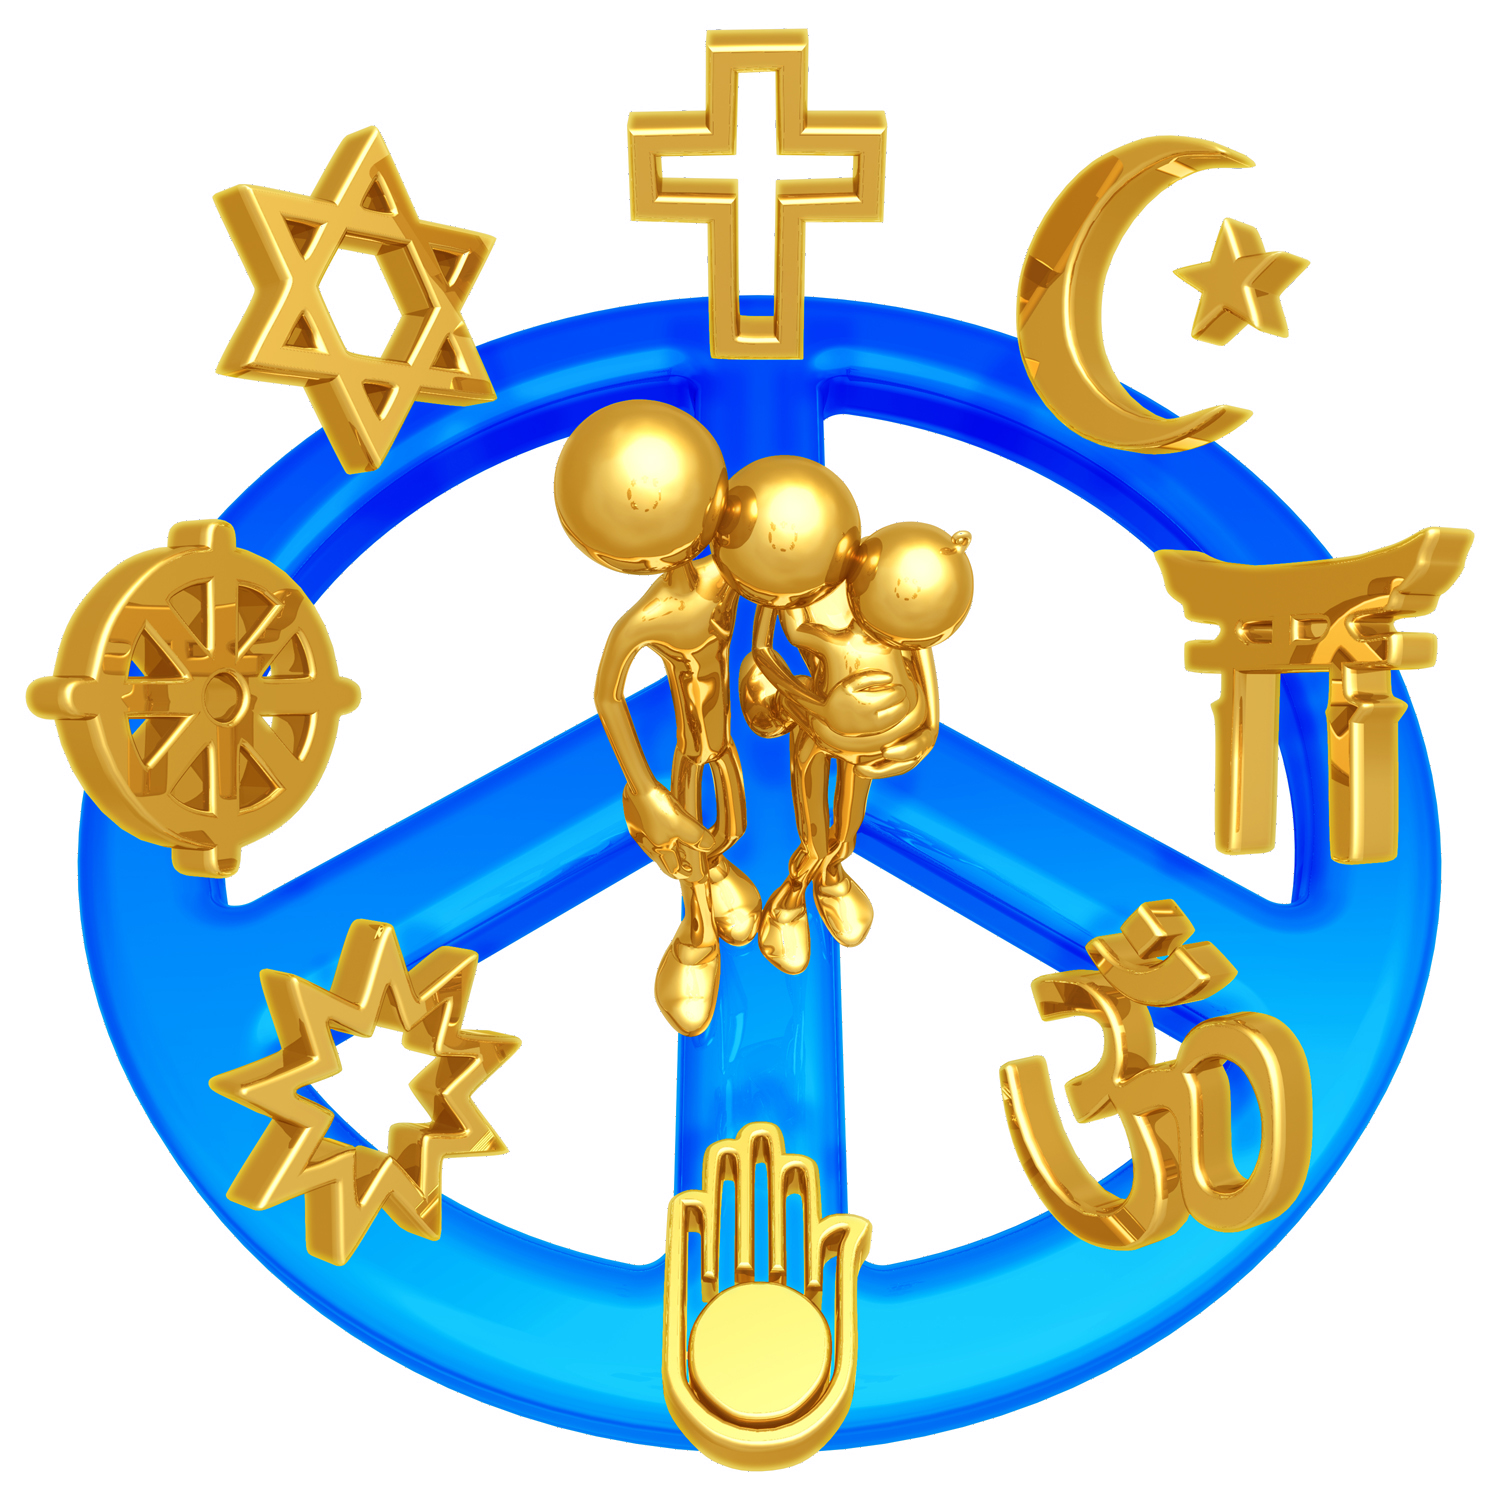 File:LuMaxArt Human Family with World Religions.png - PNG Religion